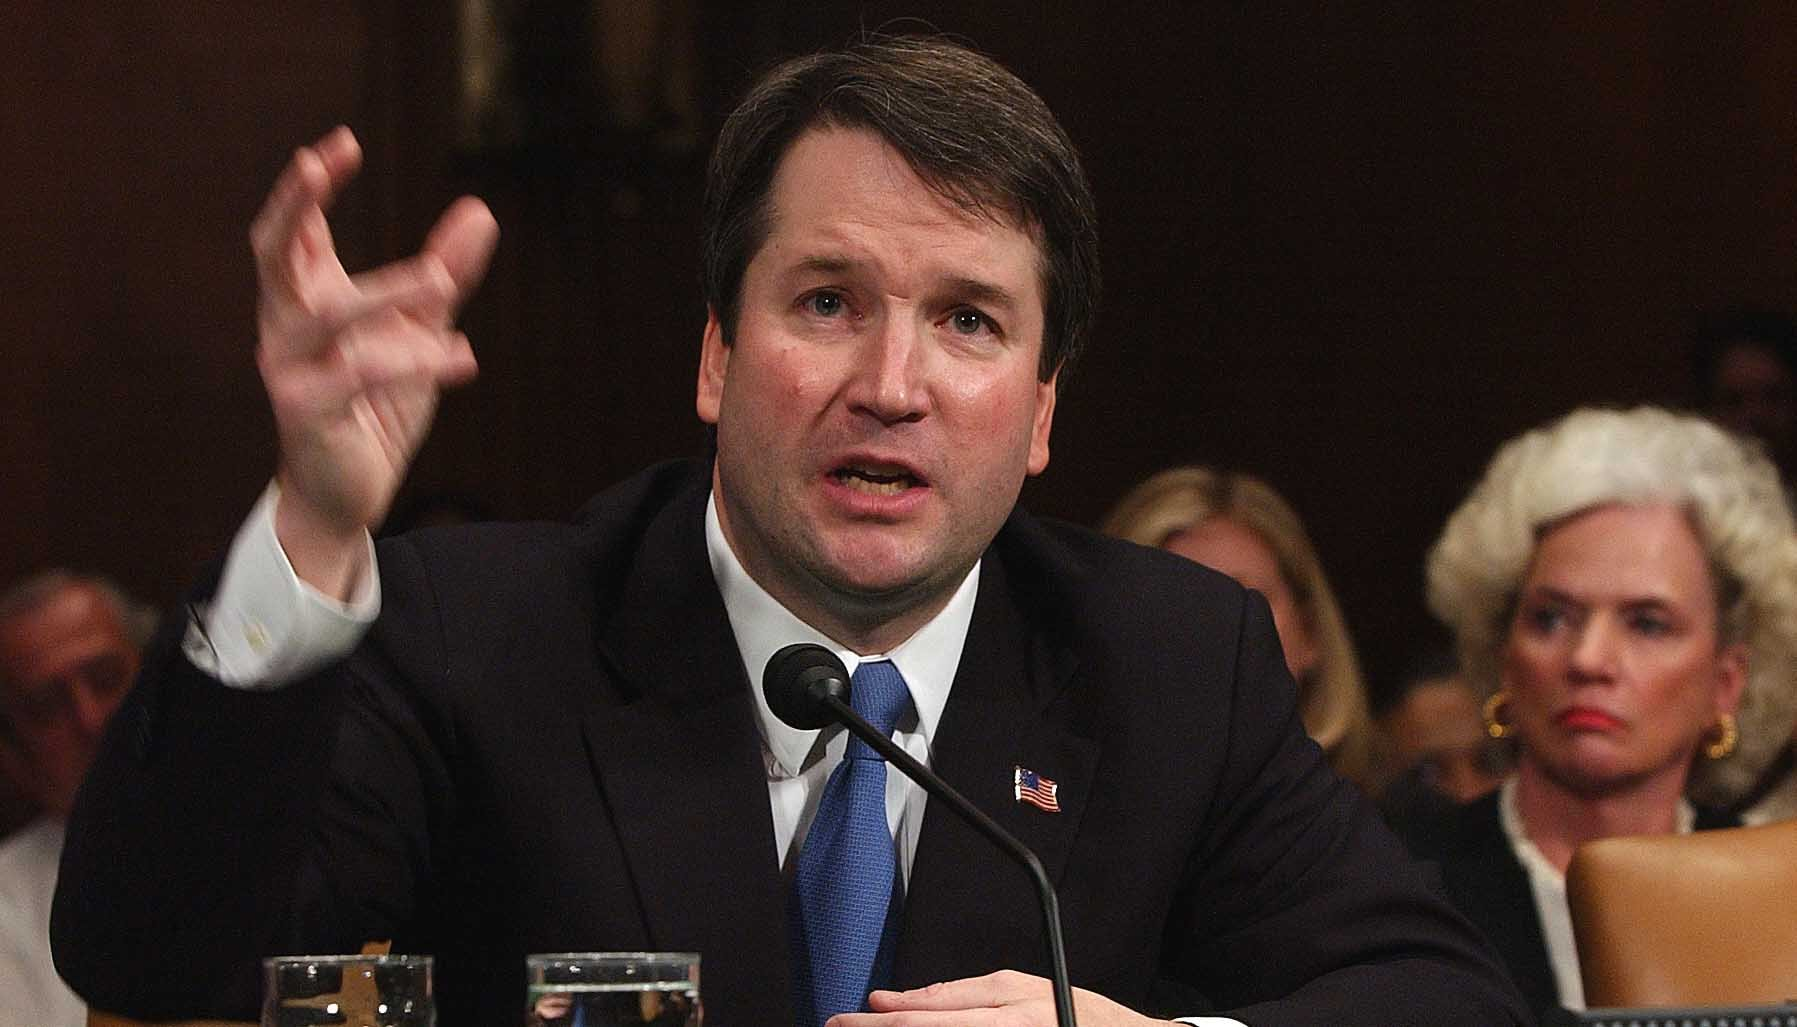 The Trump Presidency: Brett Kavanaugh nominated to Supreme Court